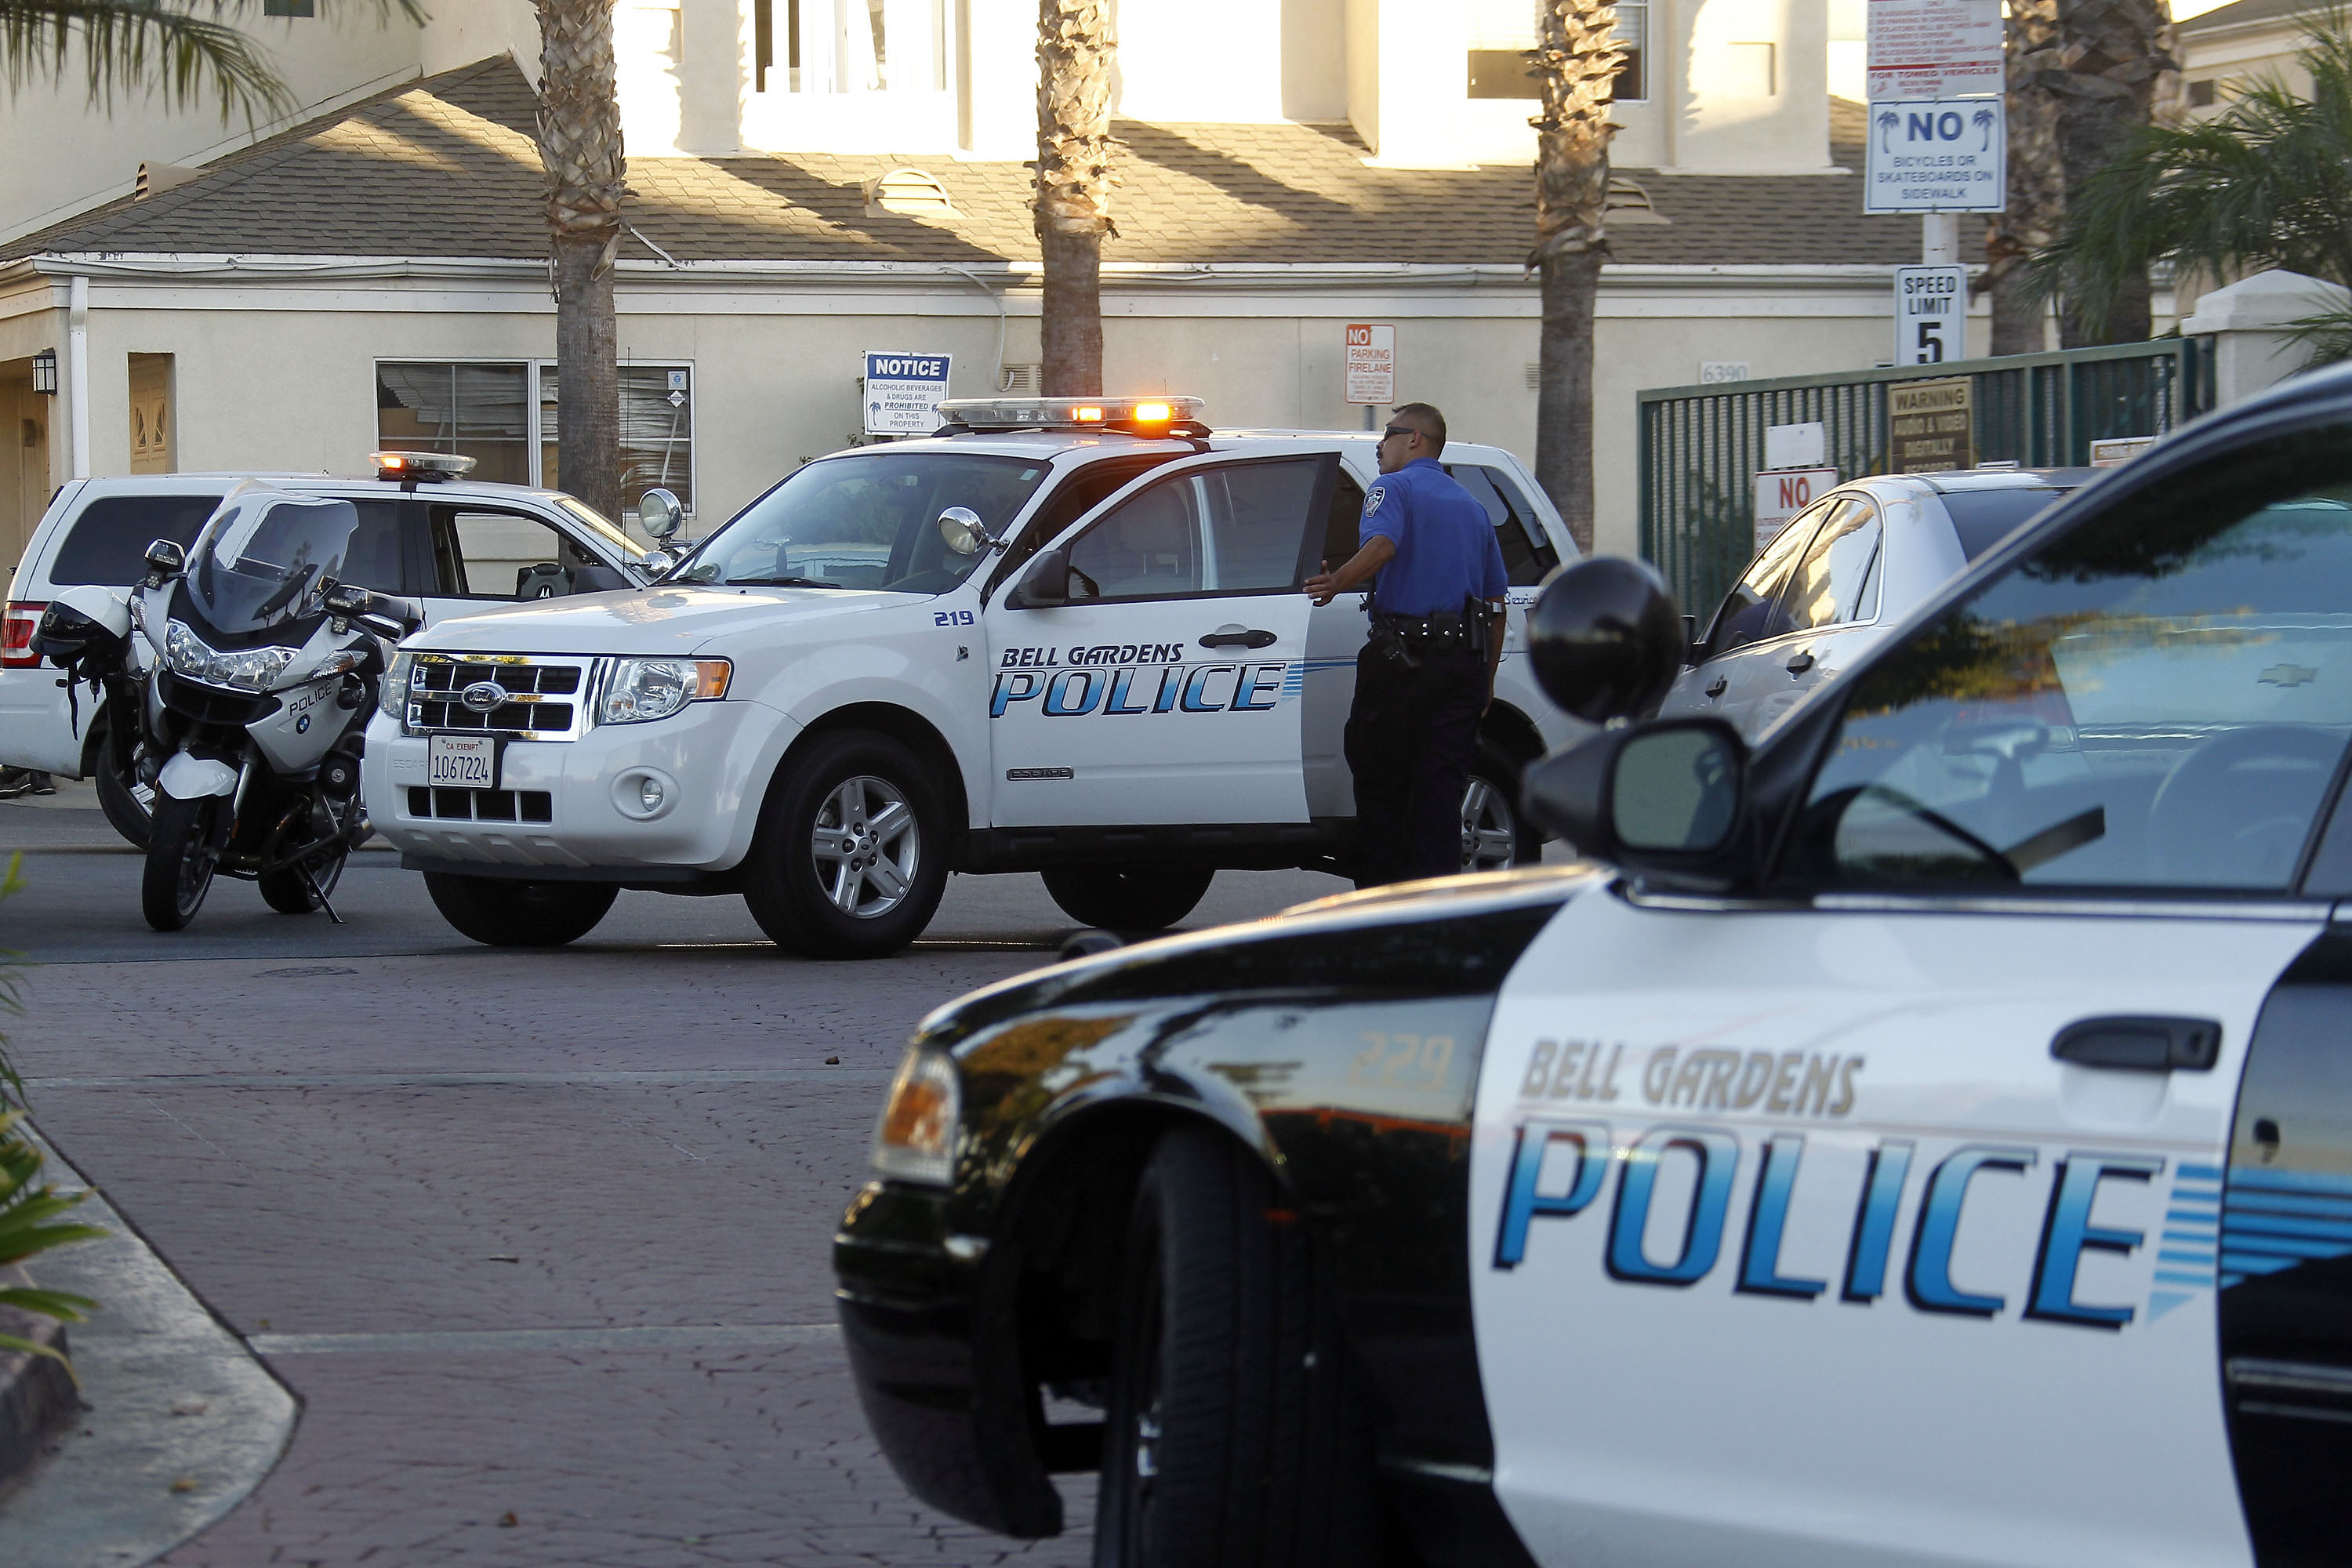 Bell Gardens Mayor Fatally Shot Allegedly By His Wife The Korea Times